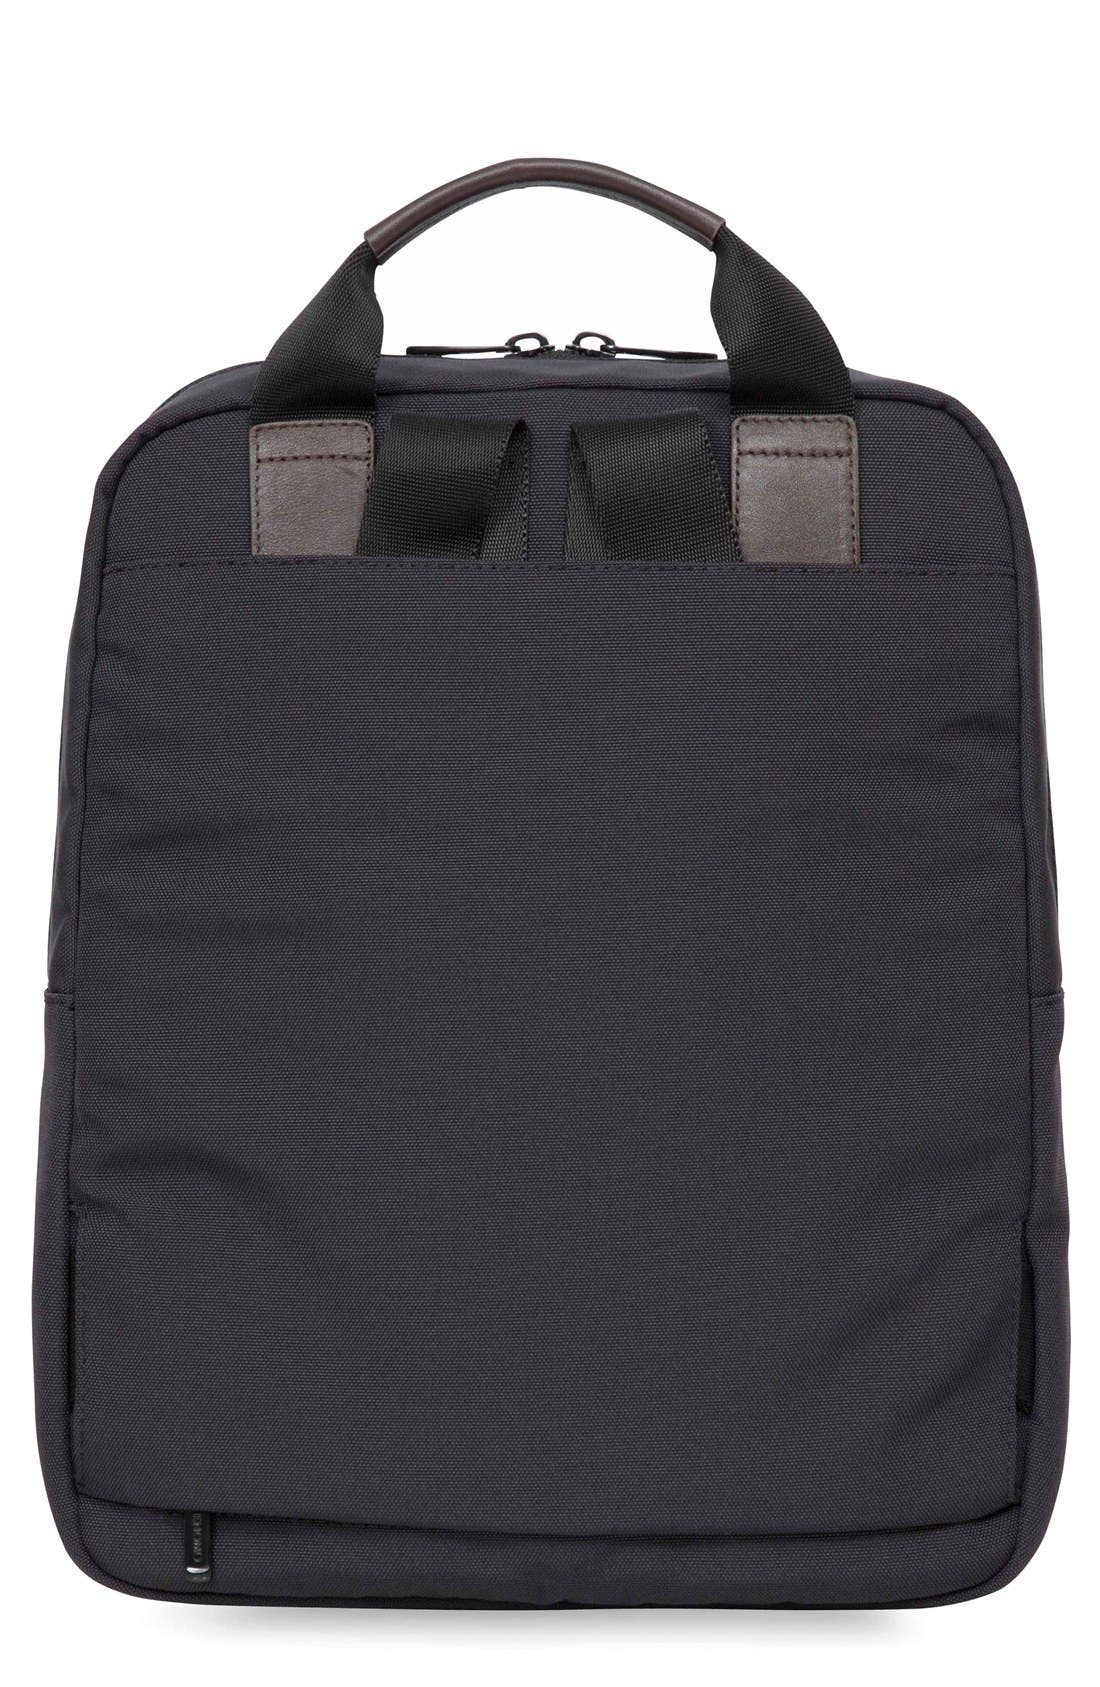 KNOMO London Brompton James Convertible Backpack